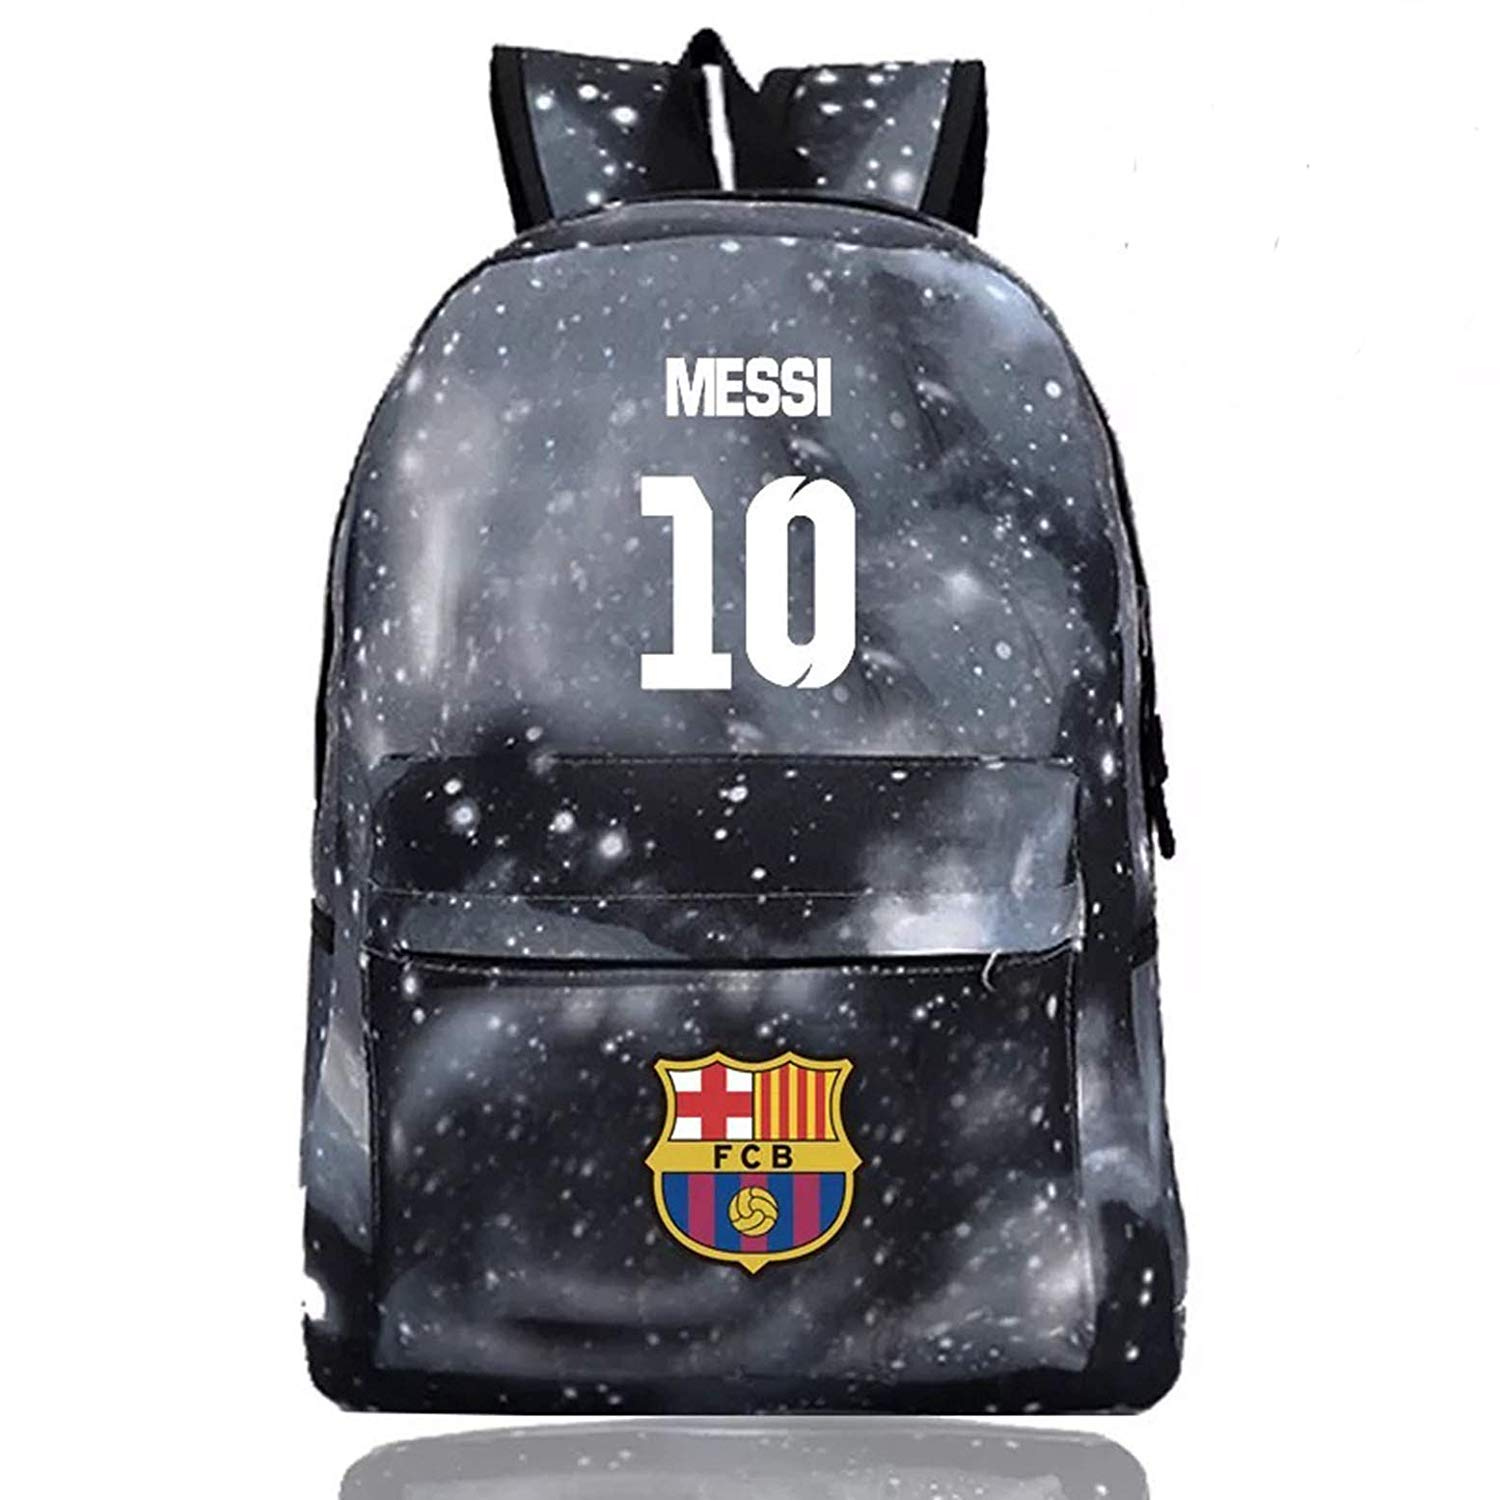 Galaxy Black Messi Fan Unisex Messi Luminous Backpack for School Travel Messi Fan